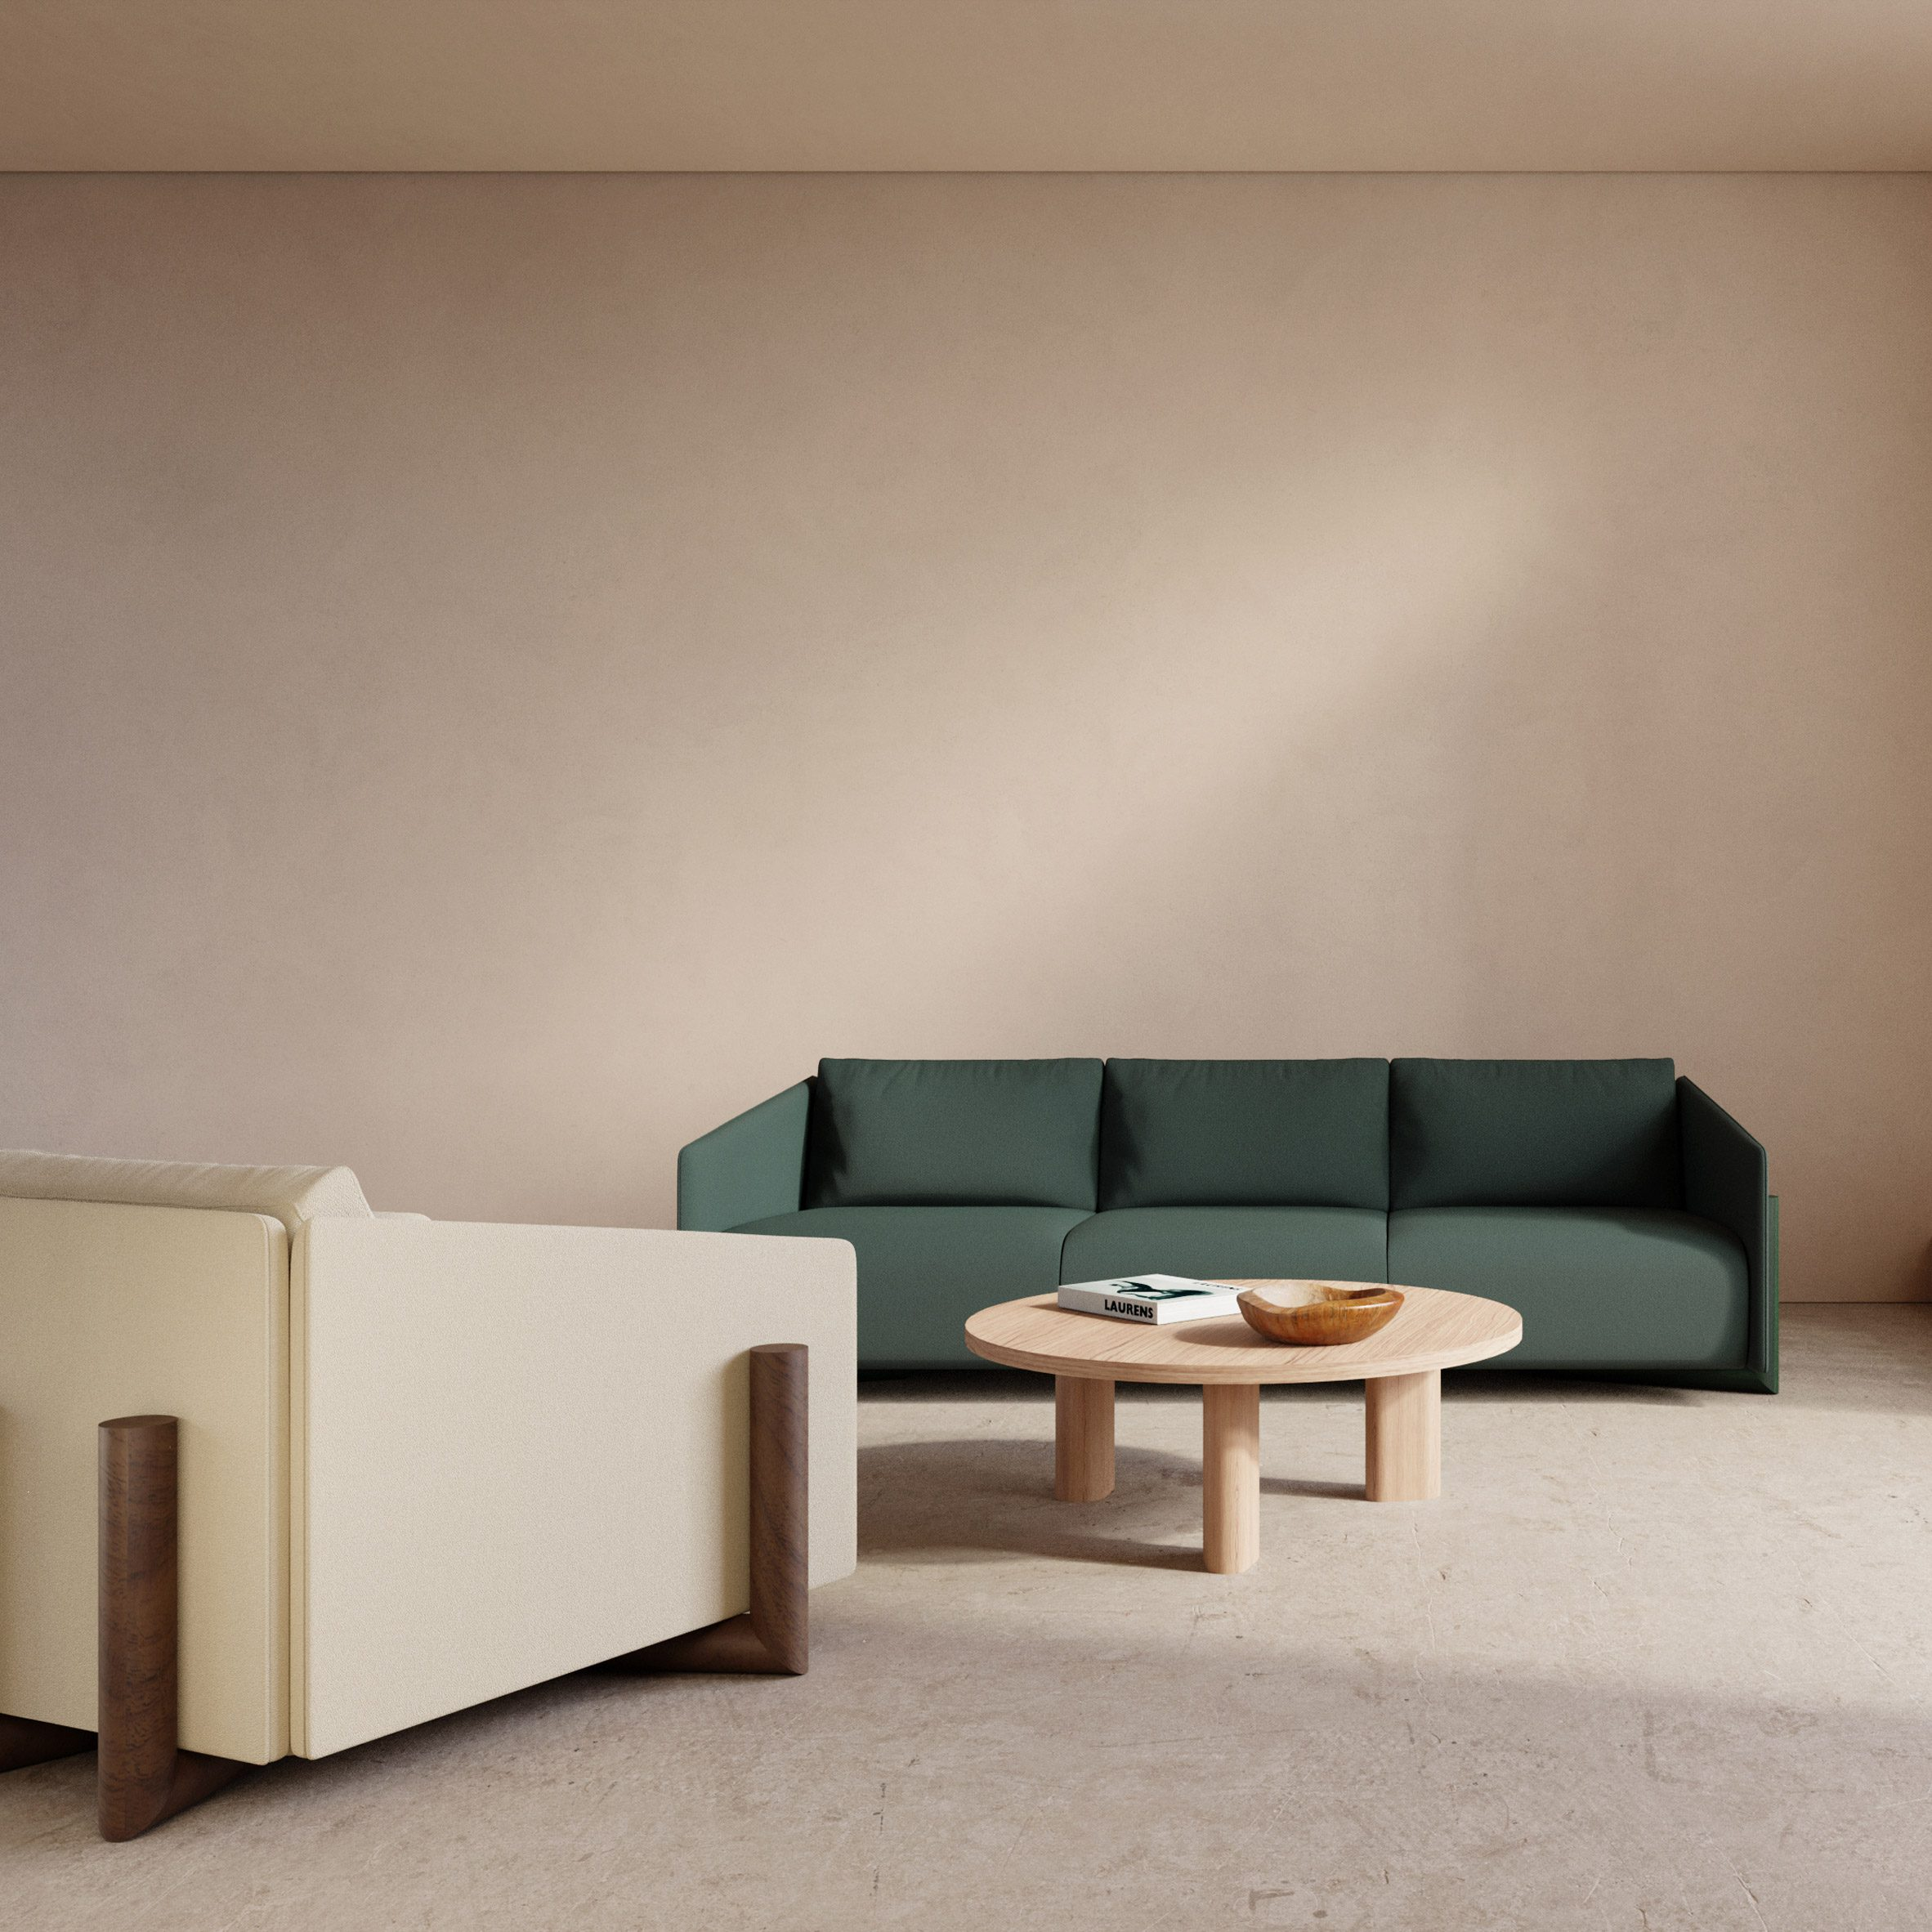 Timber seating collection by Charles Kalpakian for Kann Design